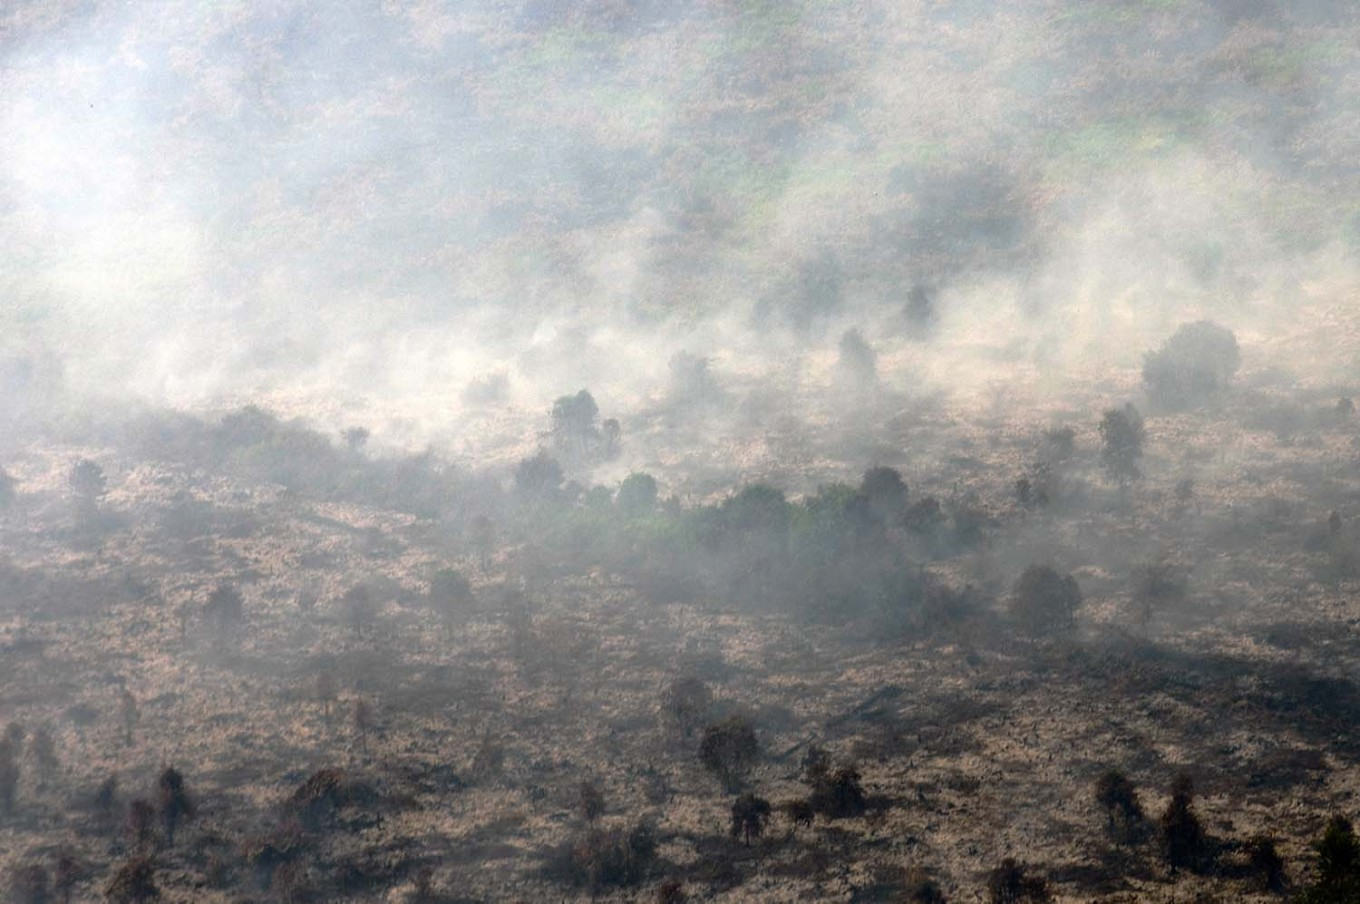 Jambi gets Rp 4 billion for land and forest fire prevention